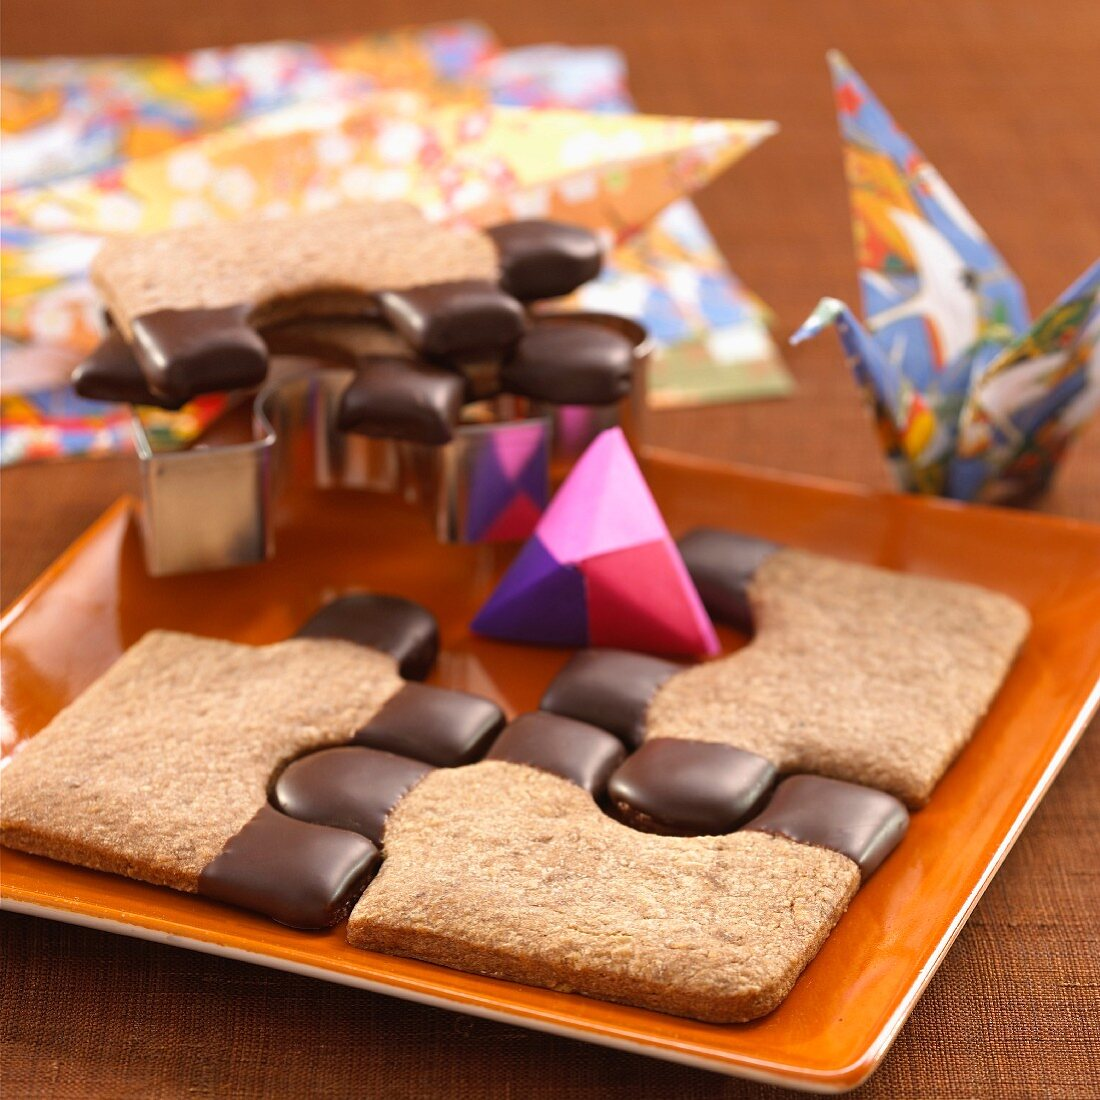 A sweet chocolate-dipped puzzle